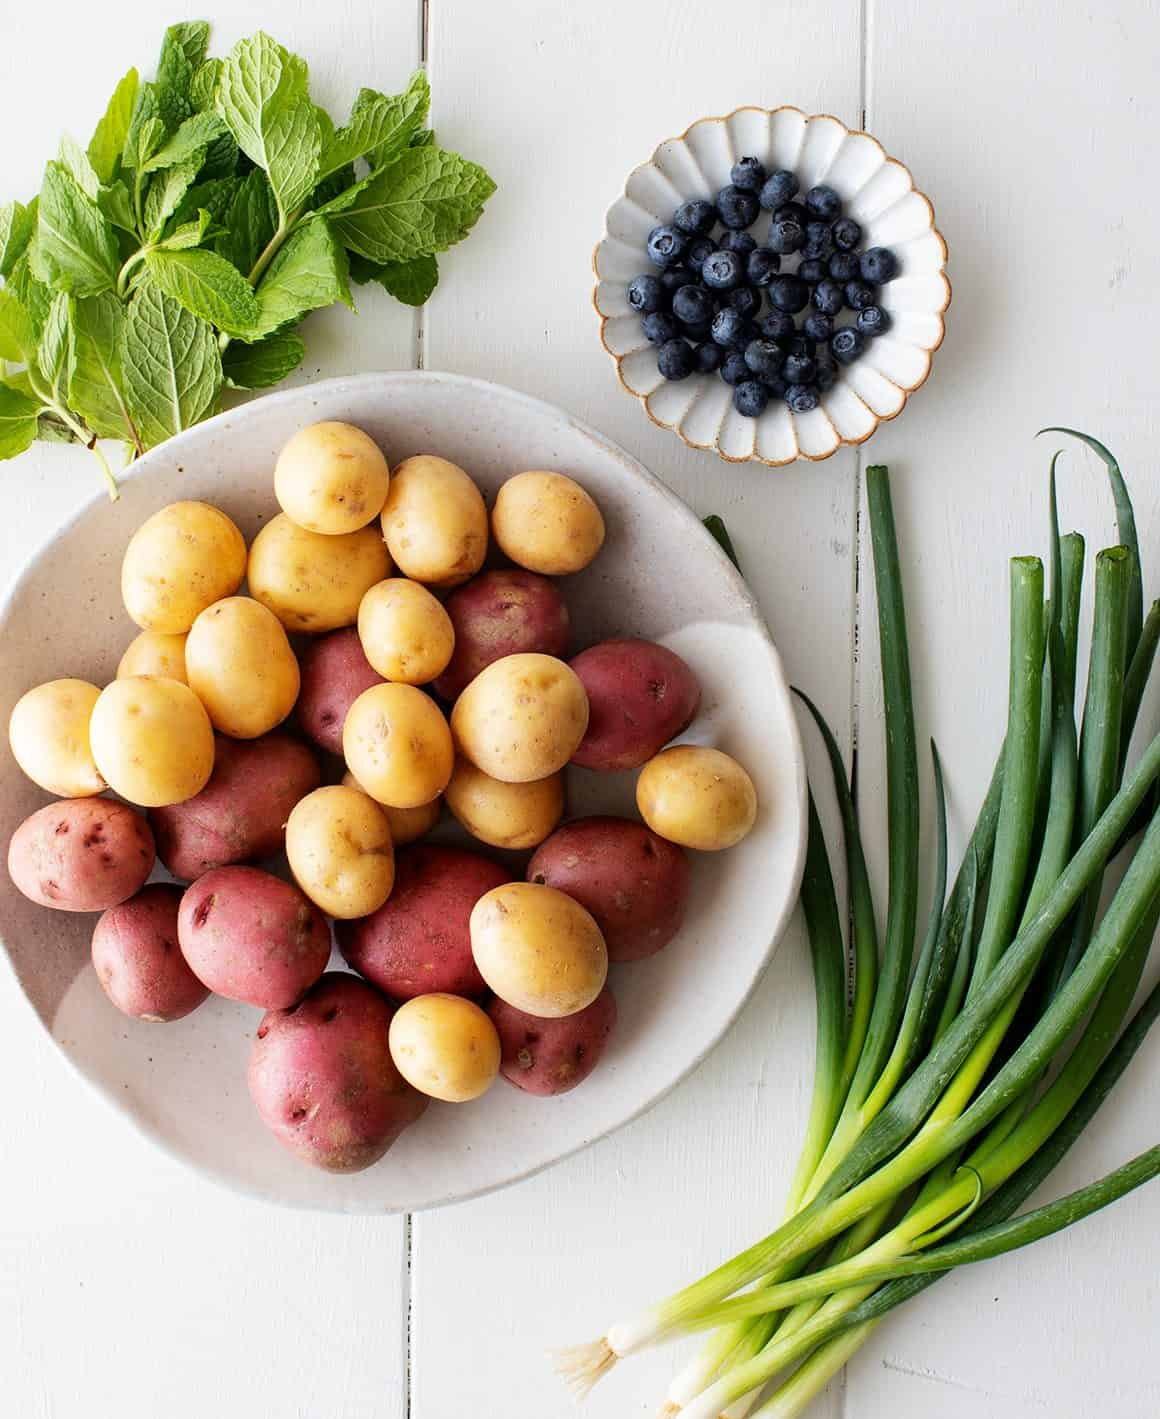 Potato salad recipe ingredients